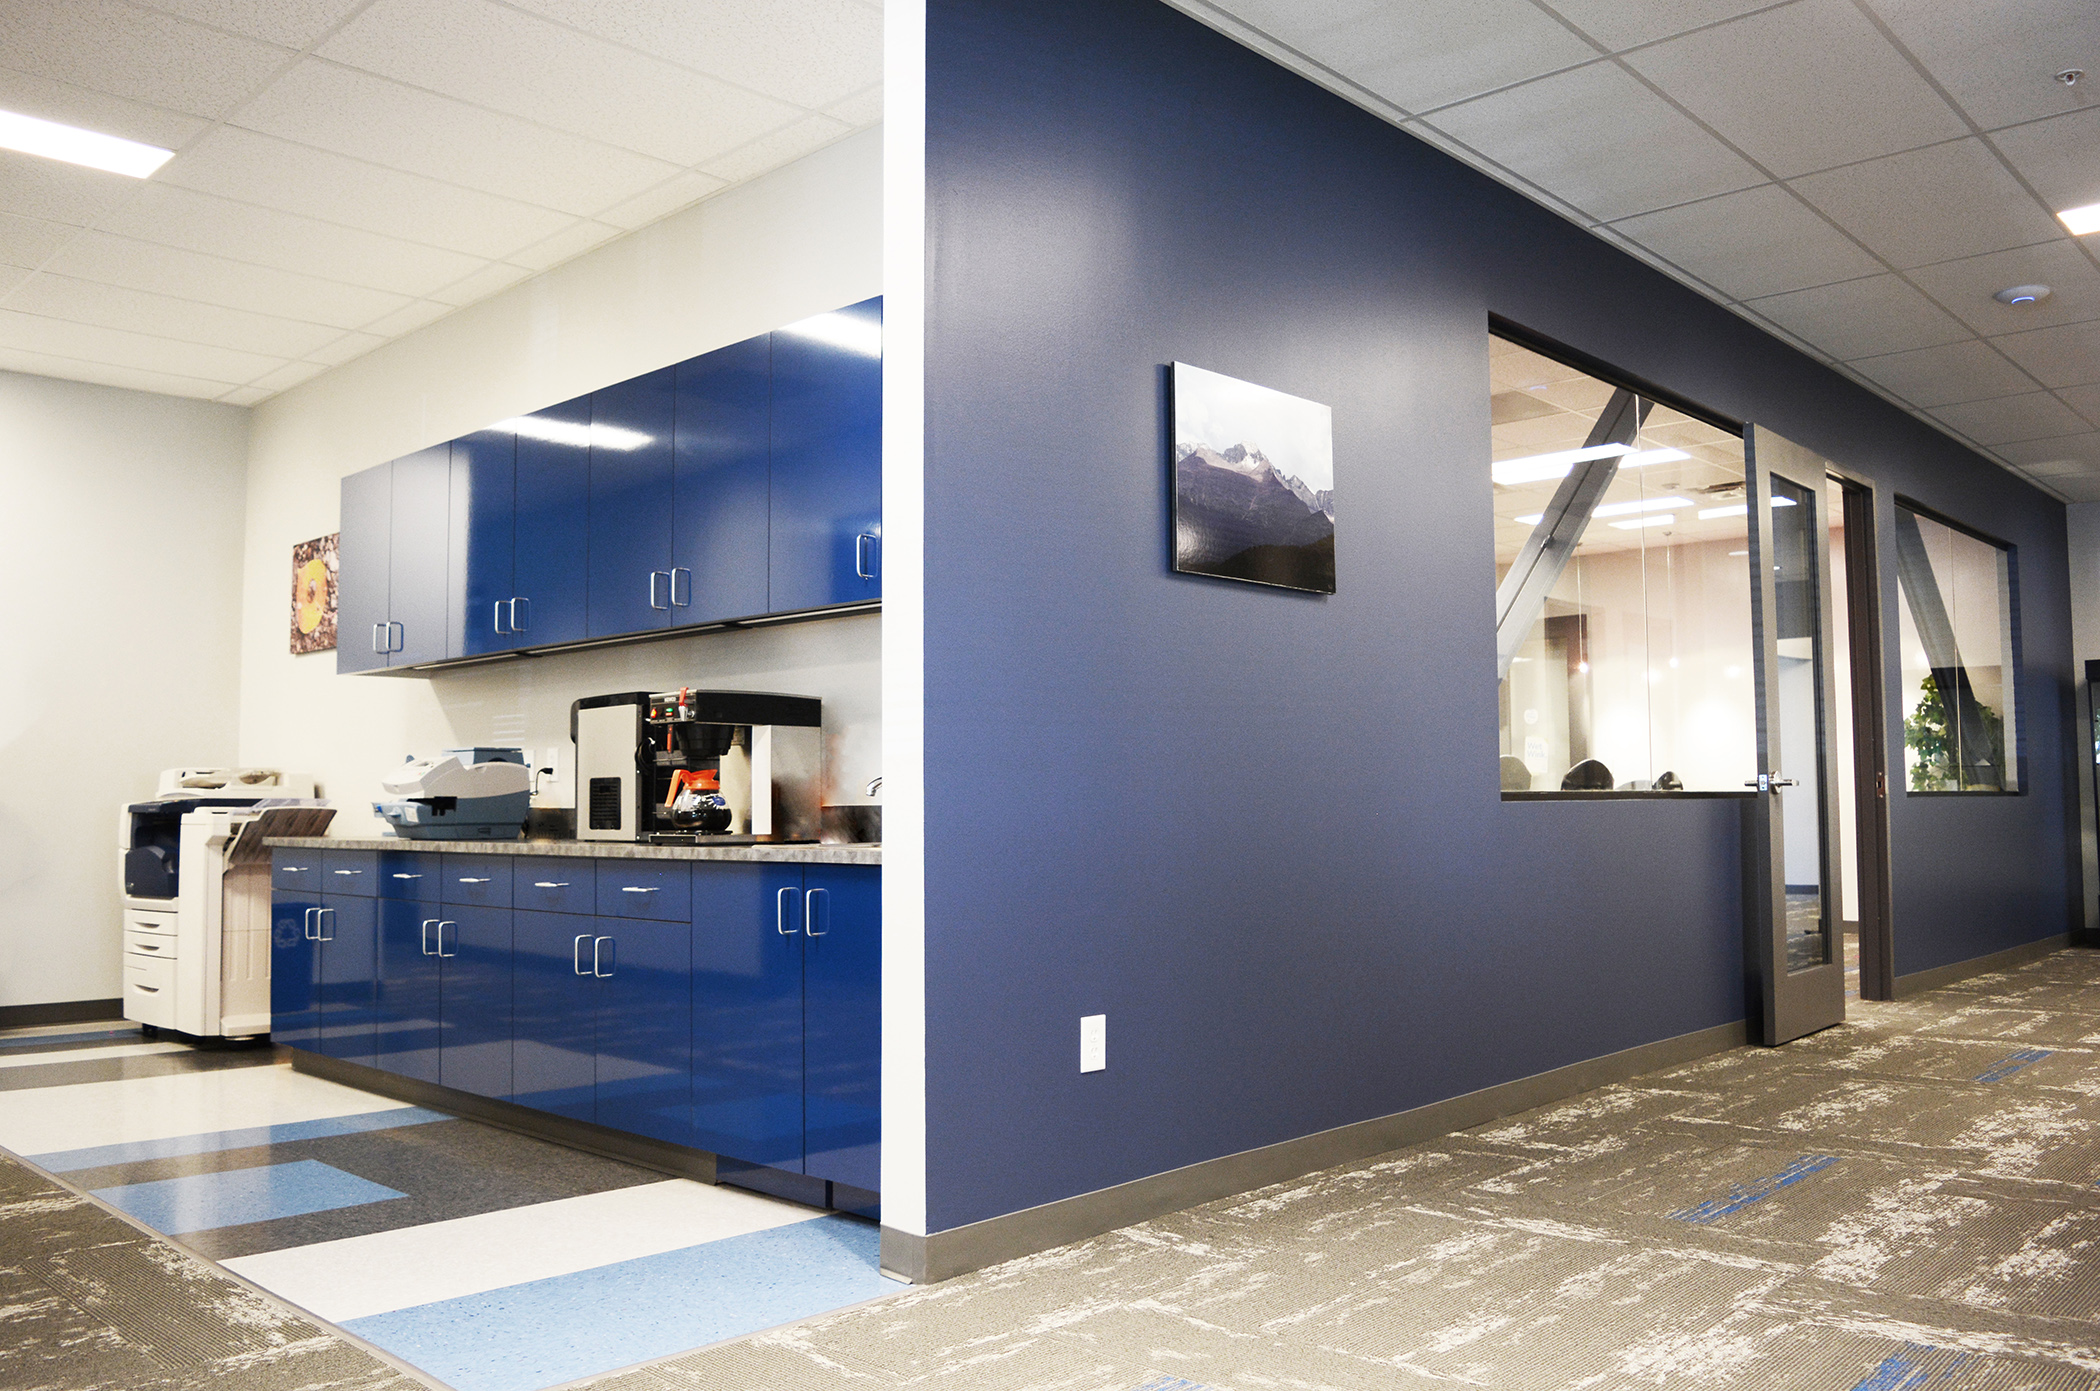 The executive hallway and private office corridor features a coffee bar, printing station and access to the board room with the painted cobalt metal bracing visible through glass sidelights.